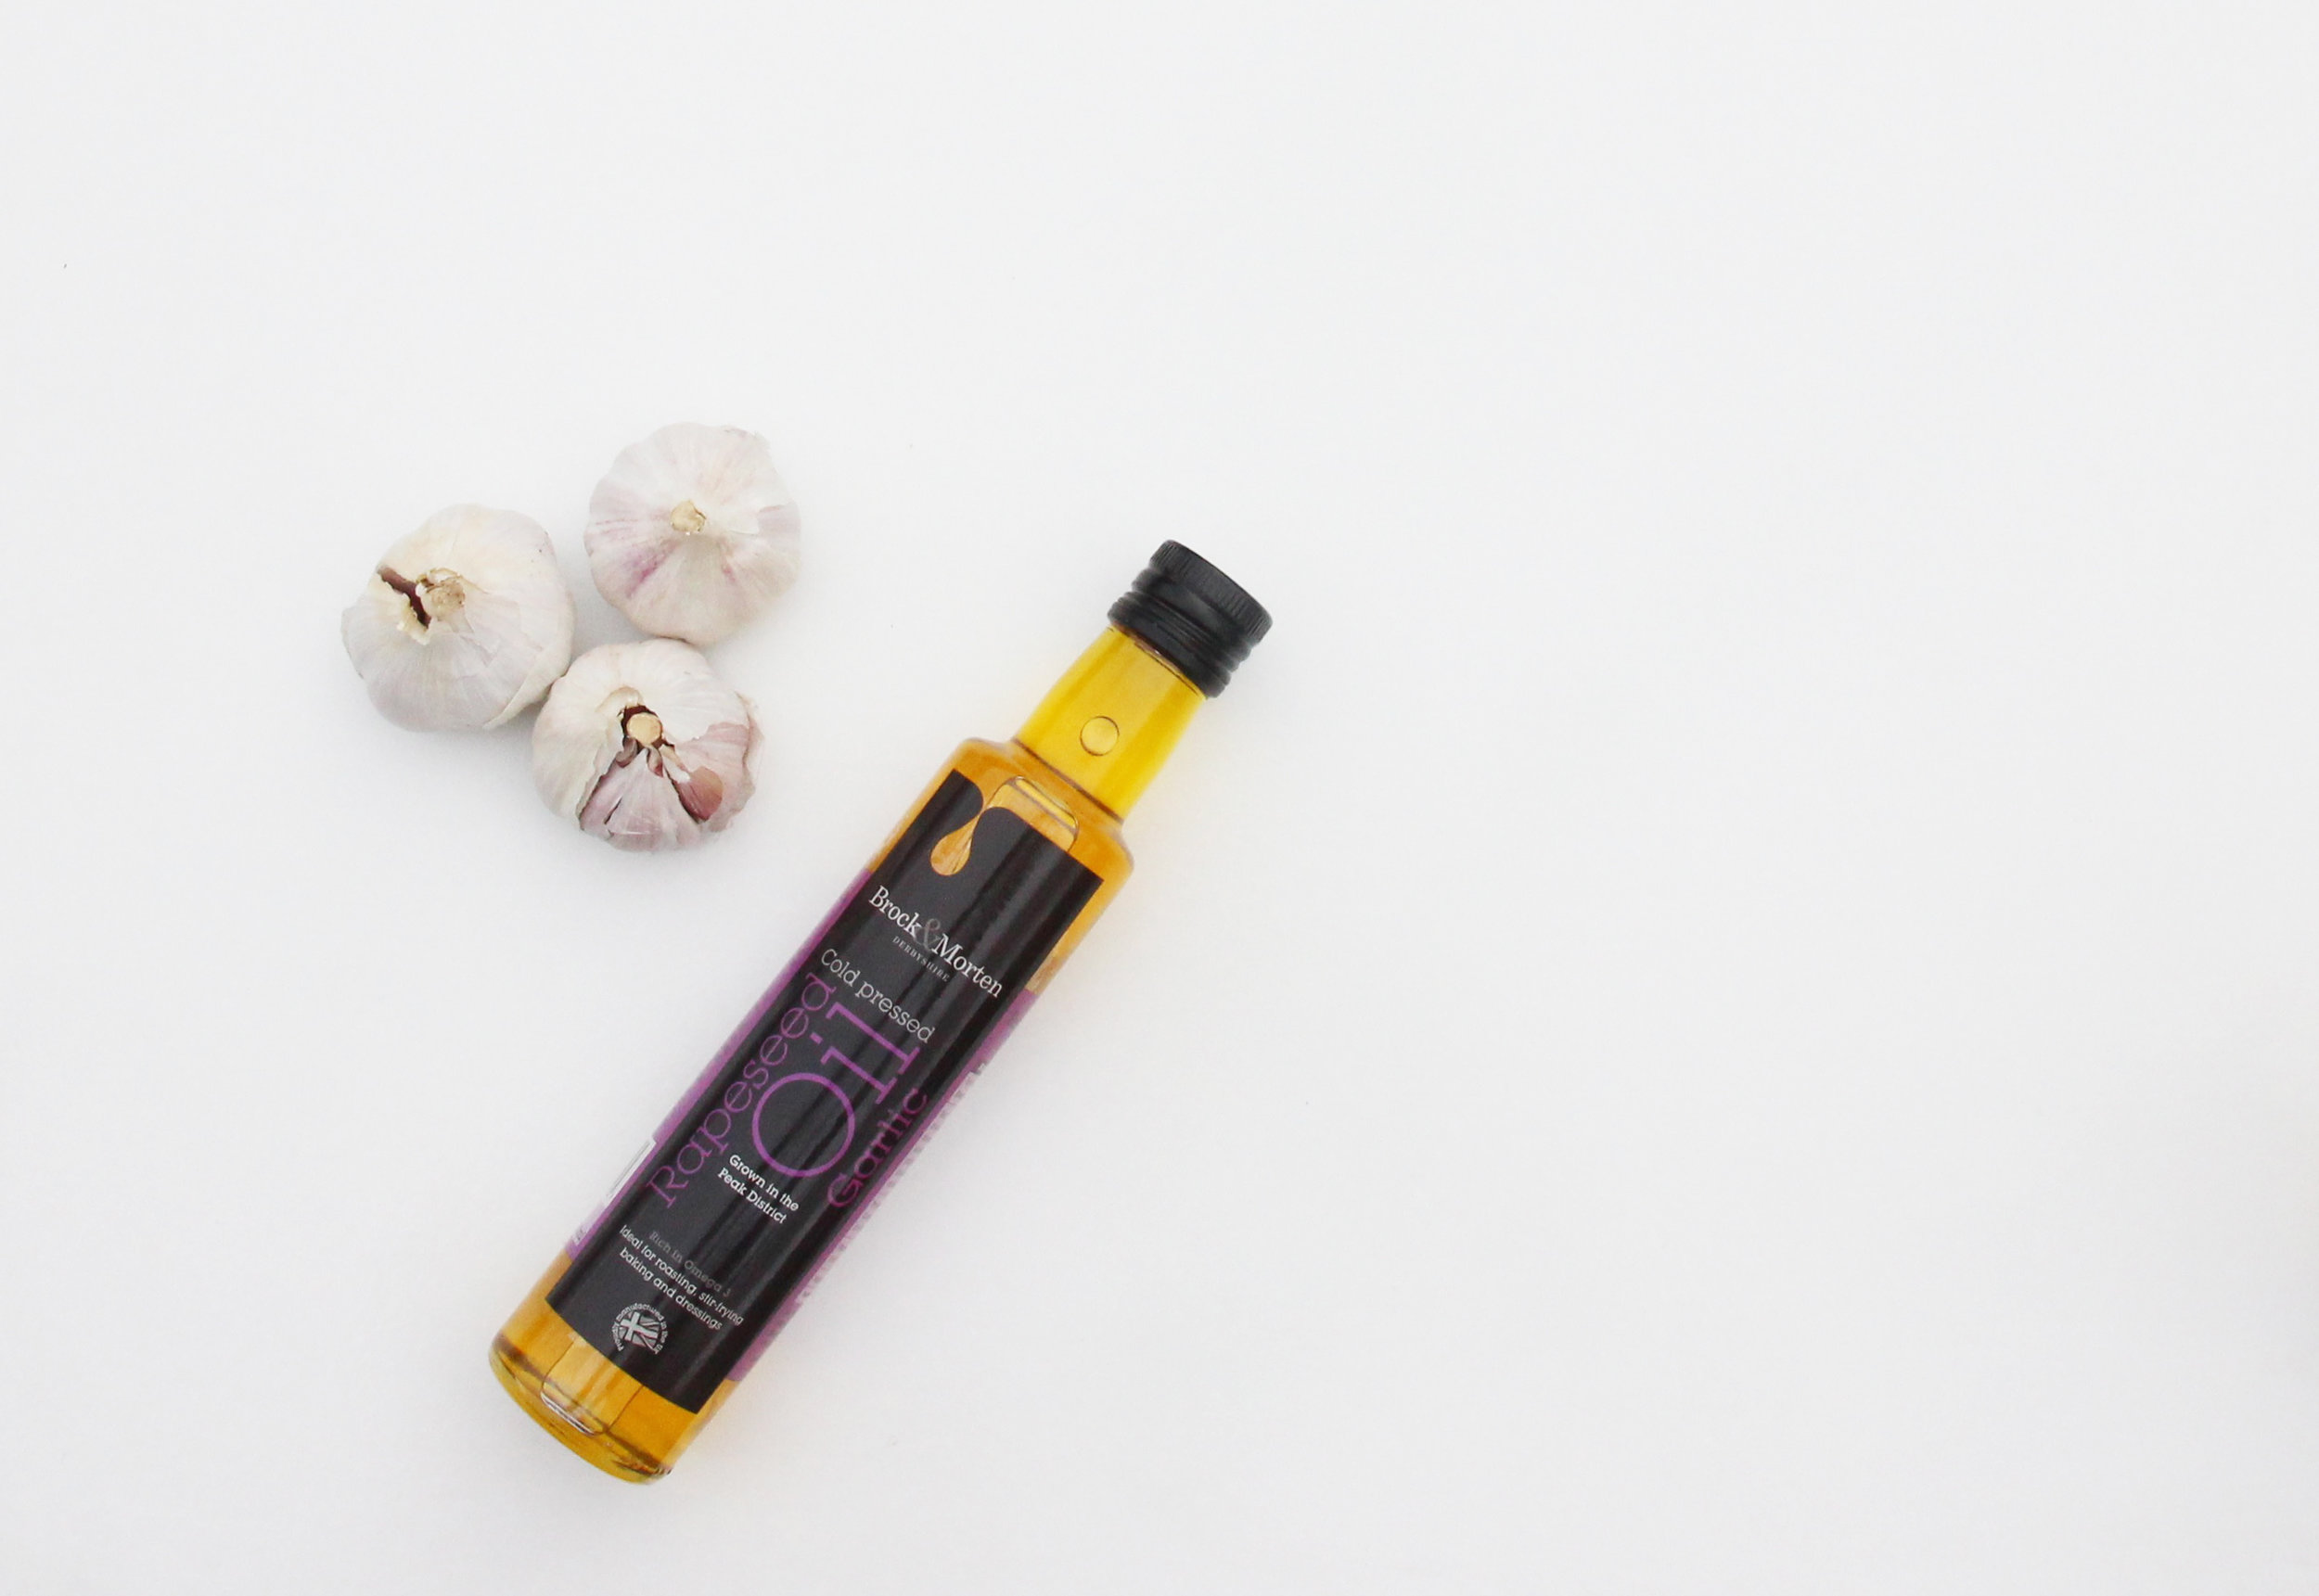 Garlic flavoured rapeseed oil